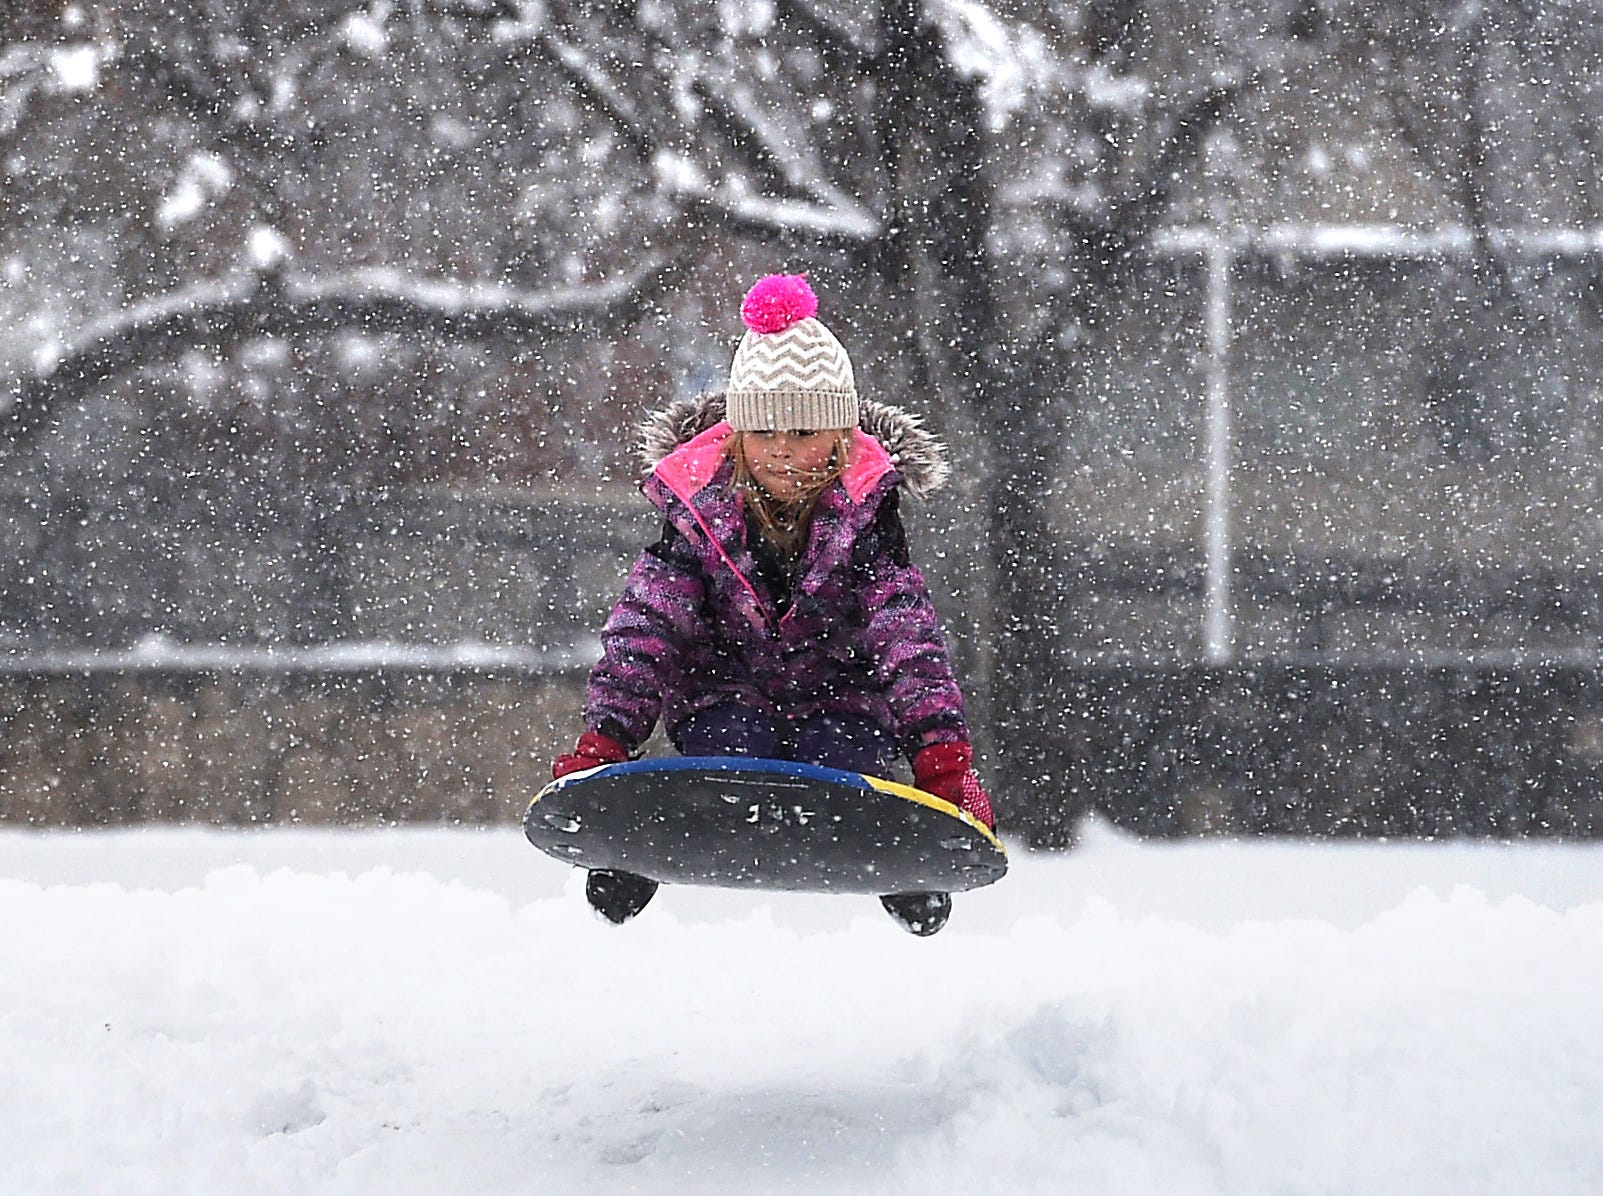 A young girl goes sledding in the fresh snow at Plumas Park in Reno on March 16, 2018.